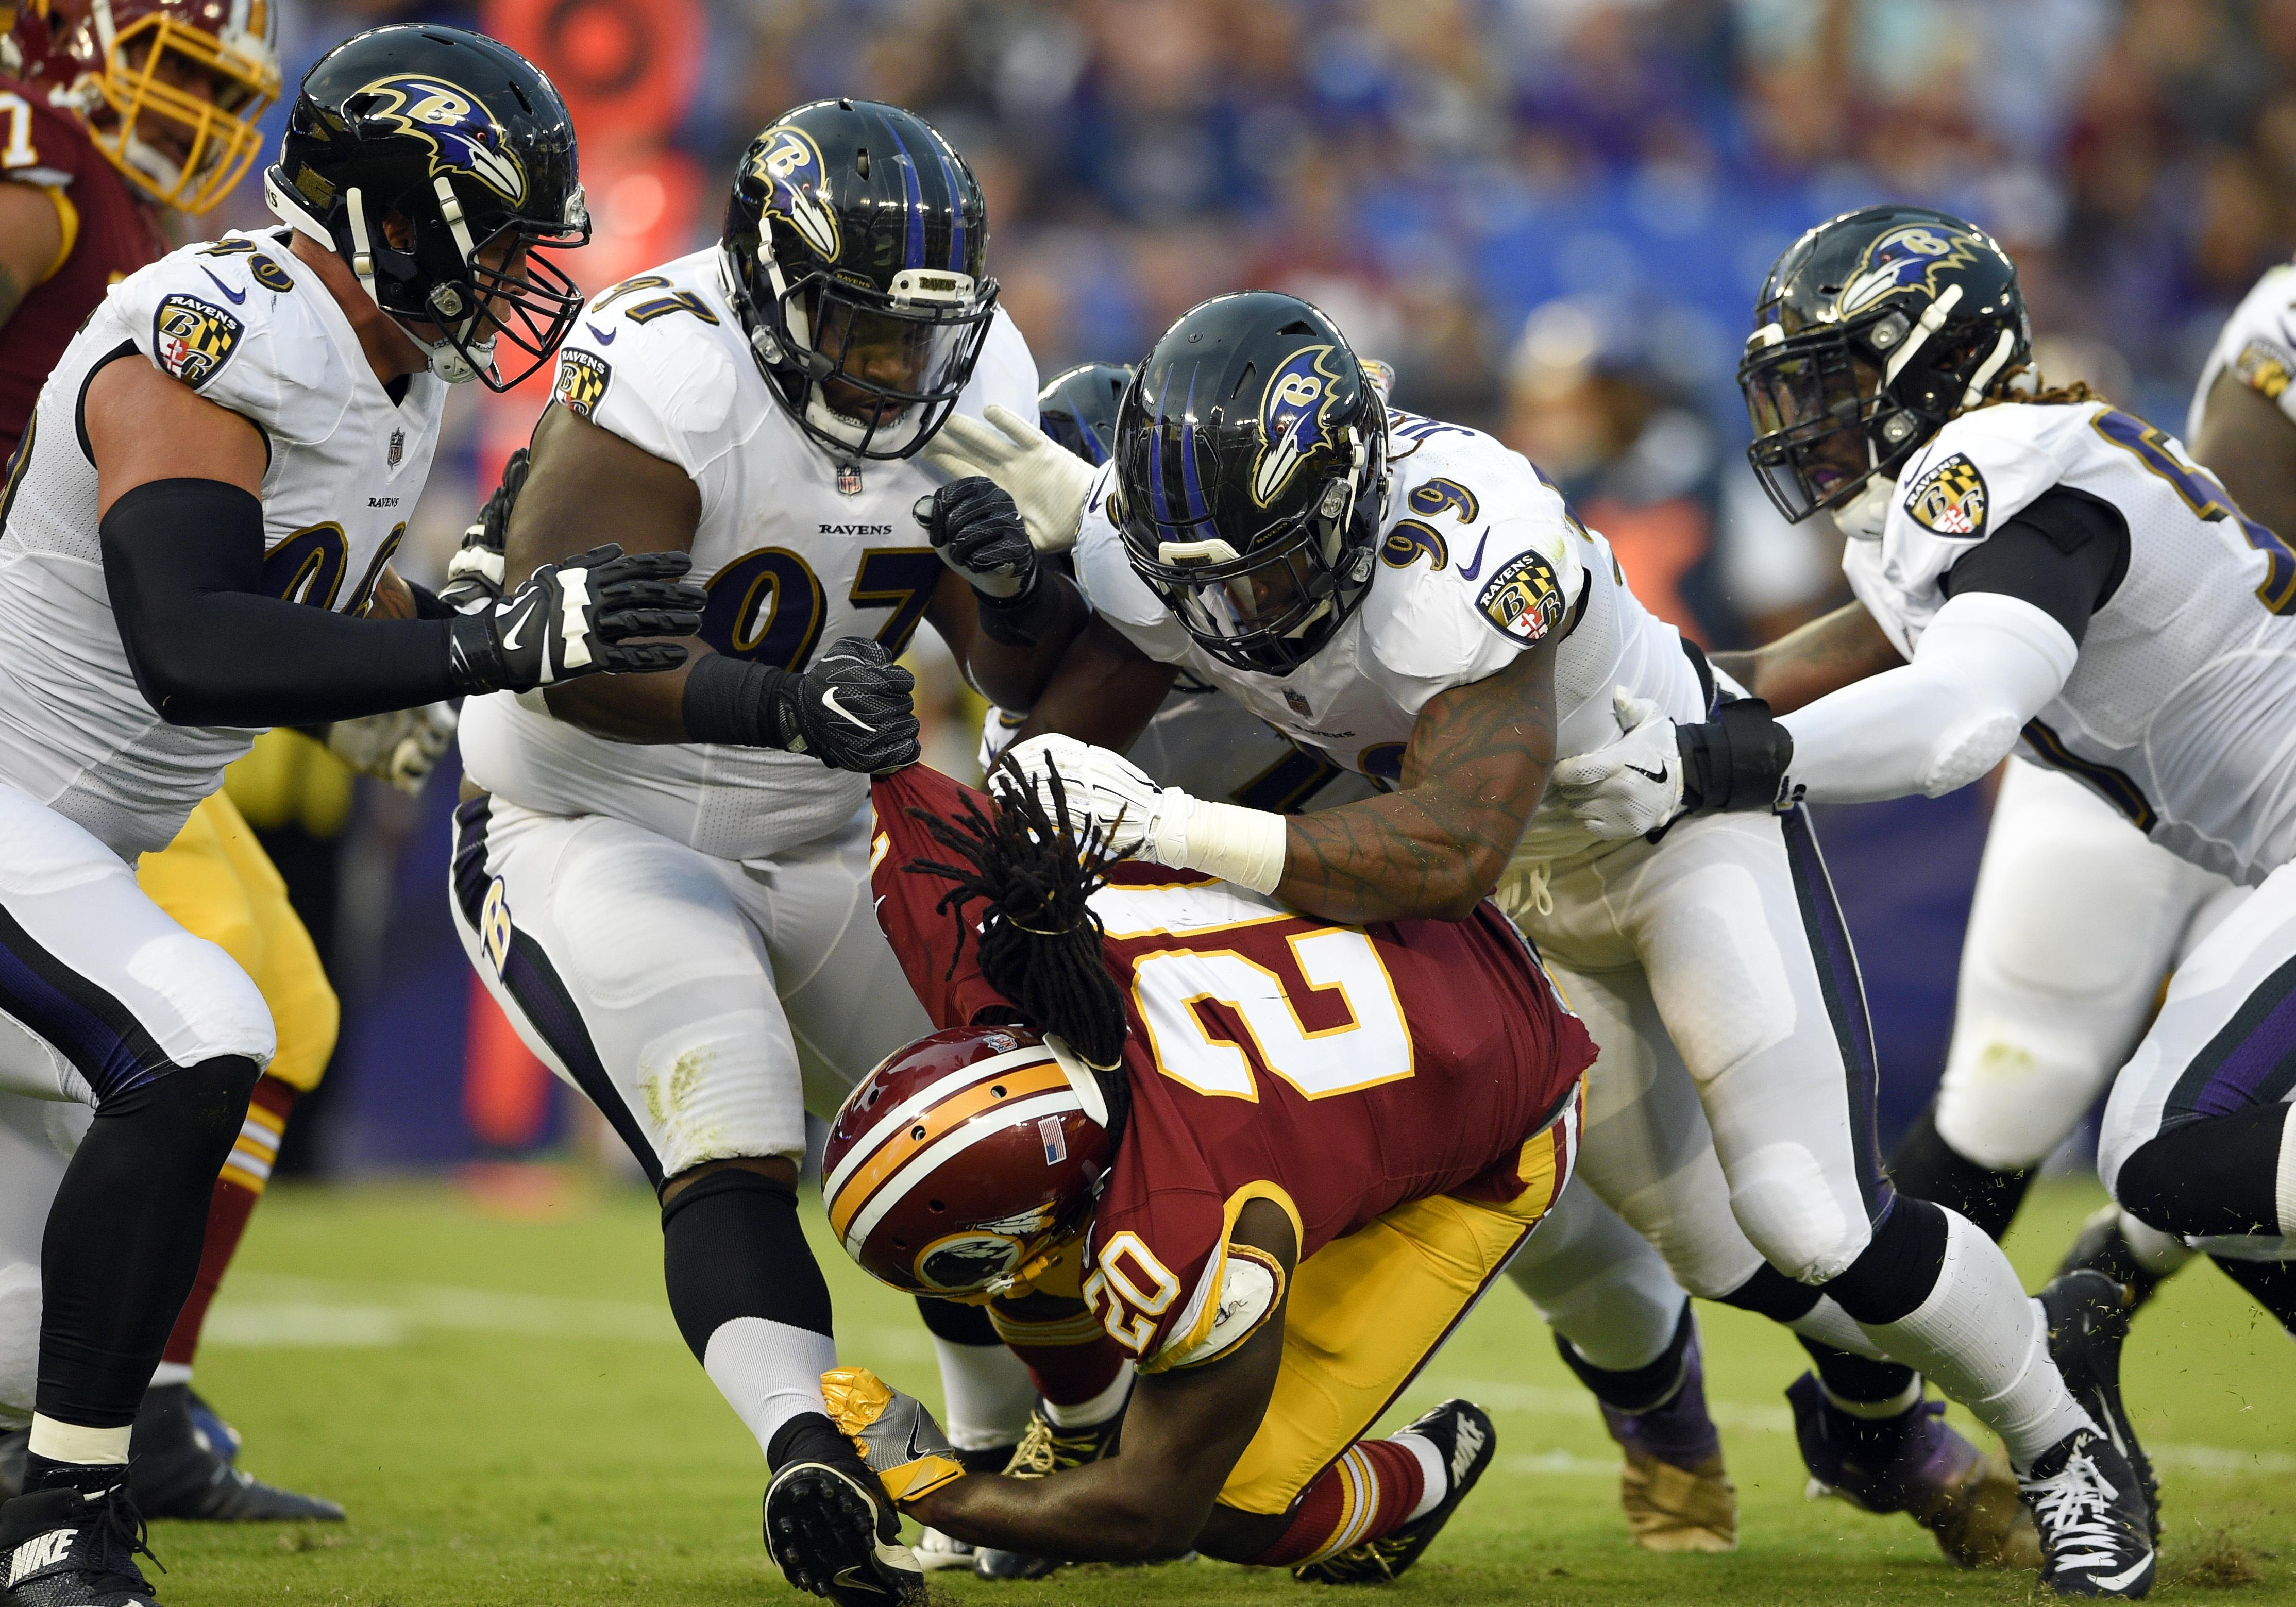 Redskins_ravens_football_23671